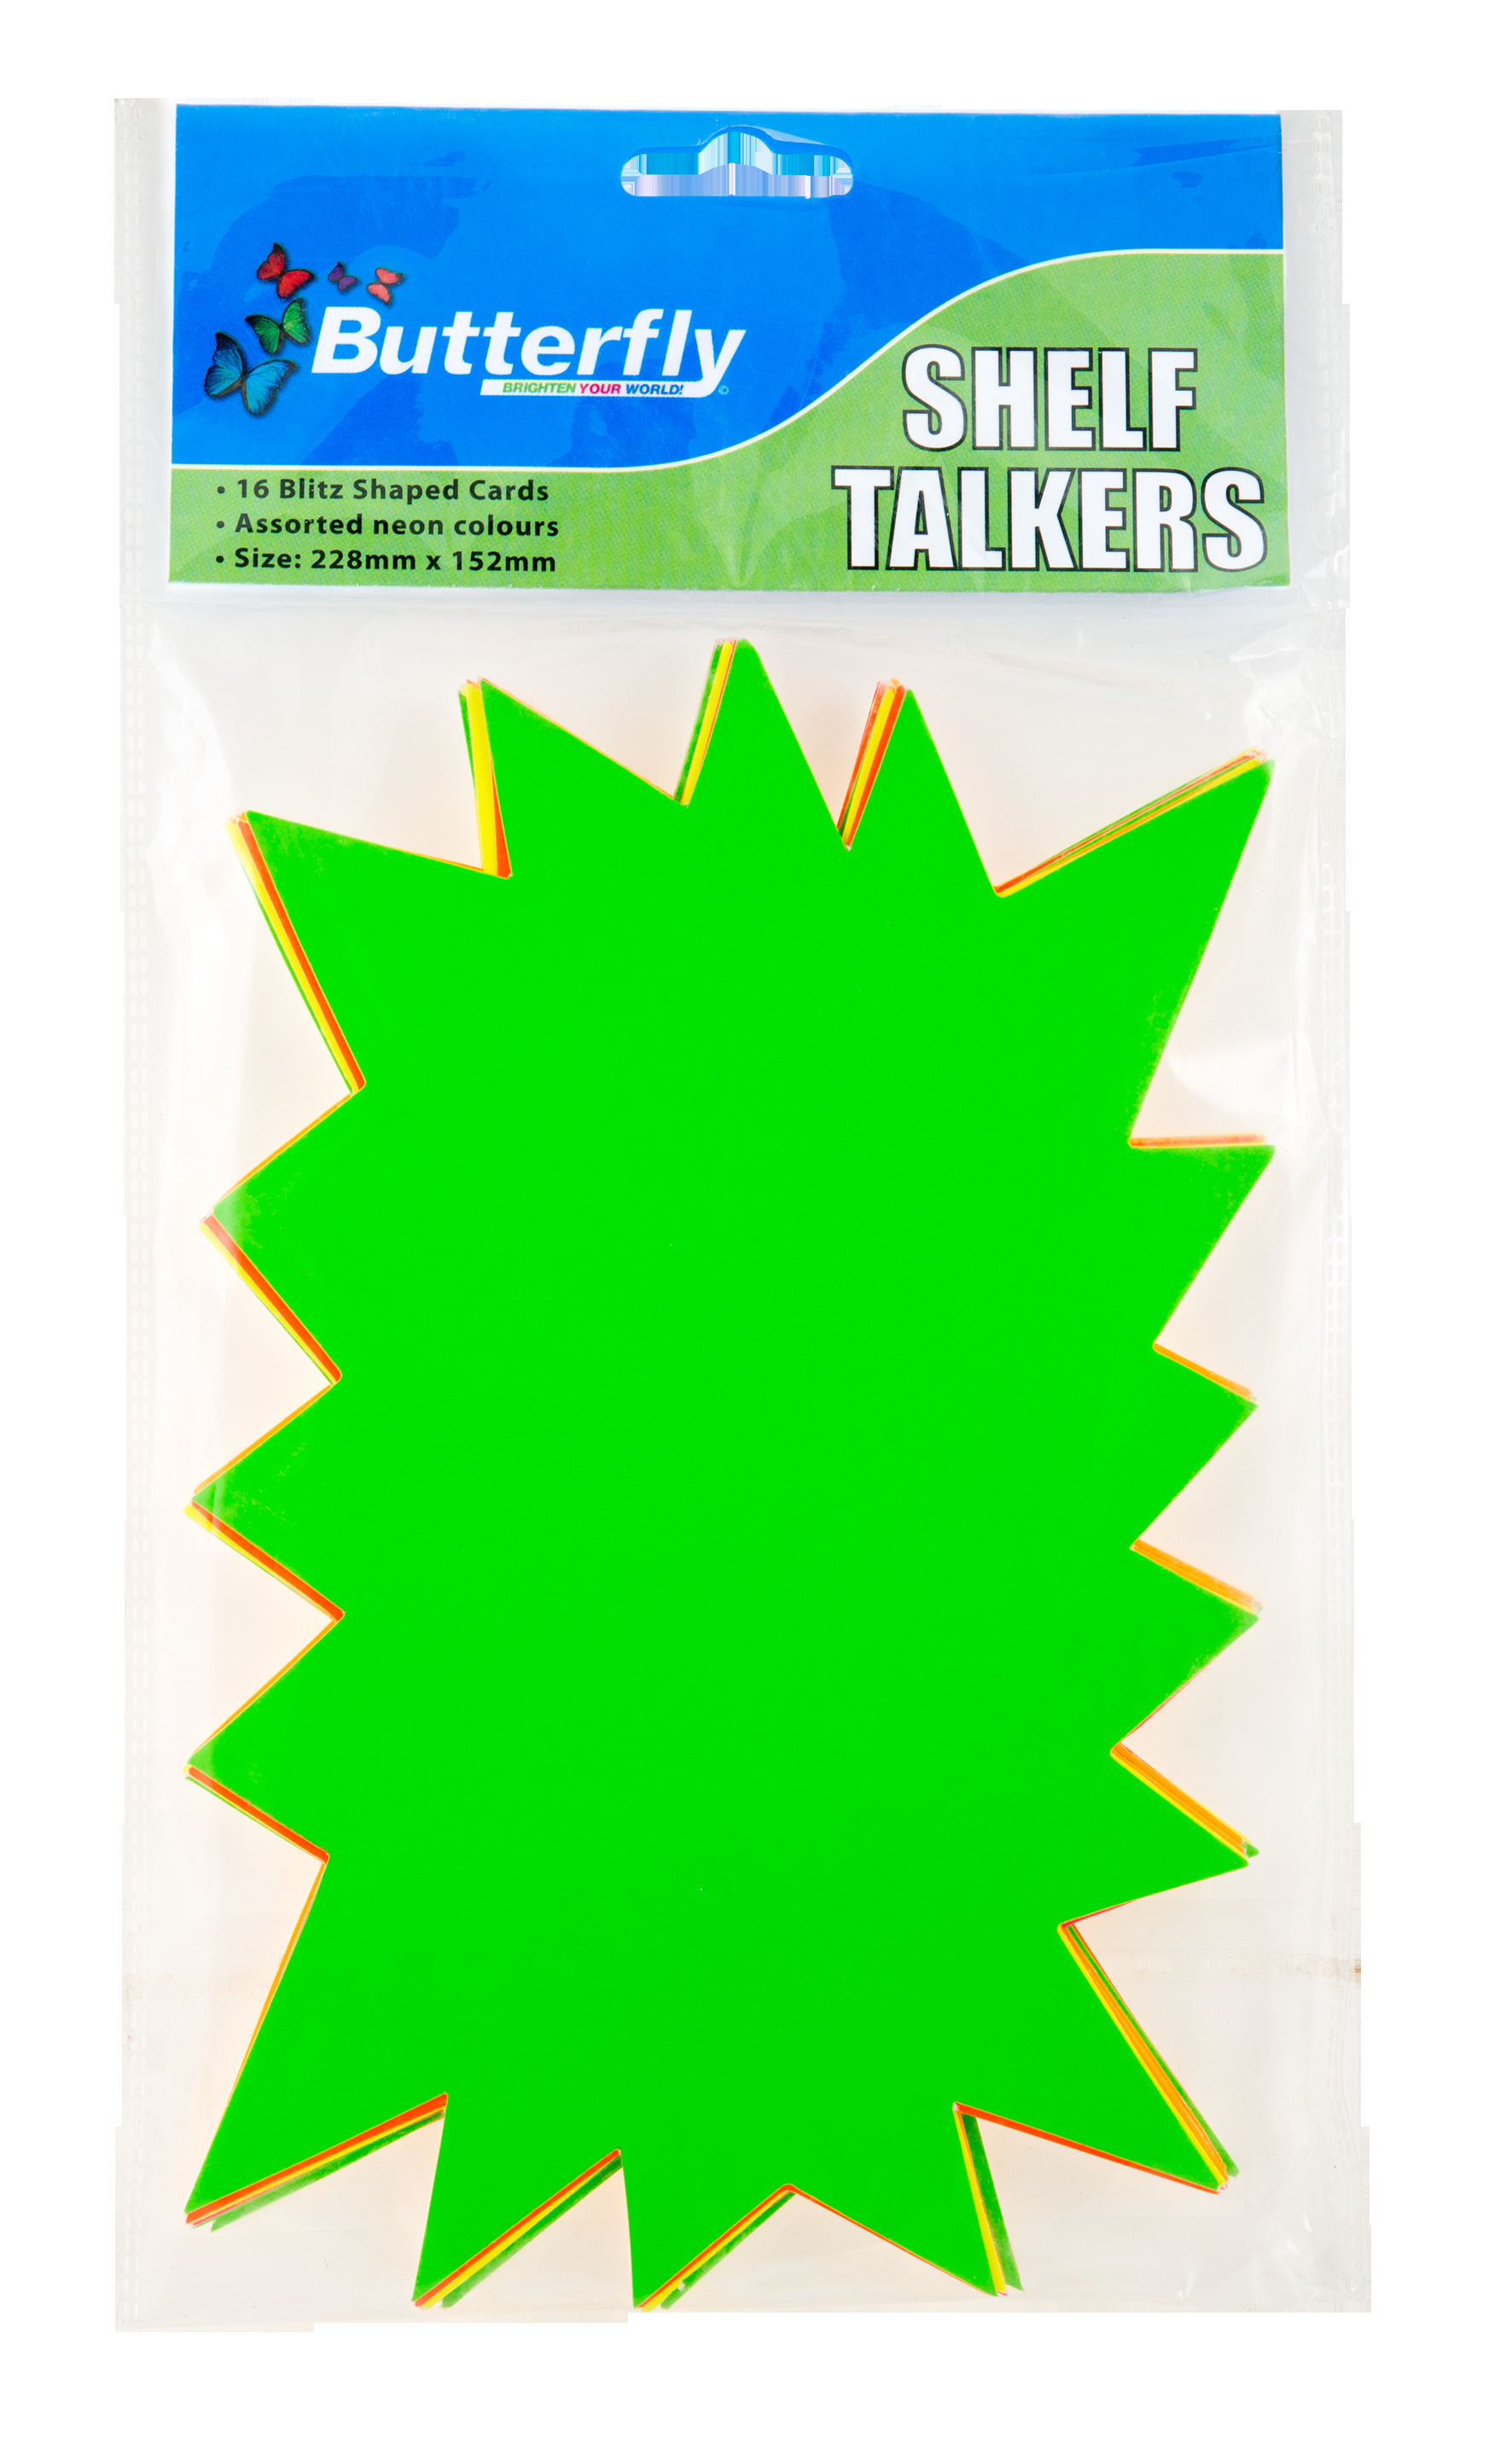 Shelf Talkers - Blitz Cards 16 (228 x 152mm)